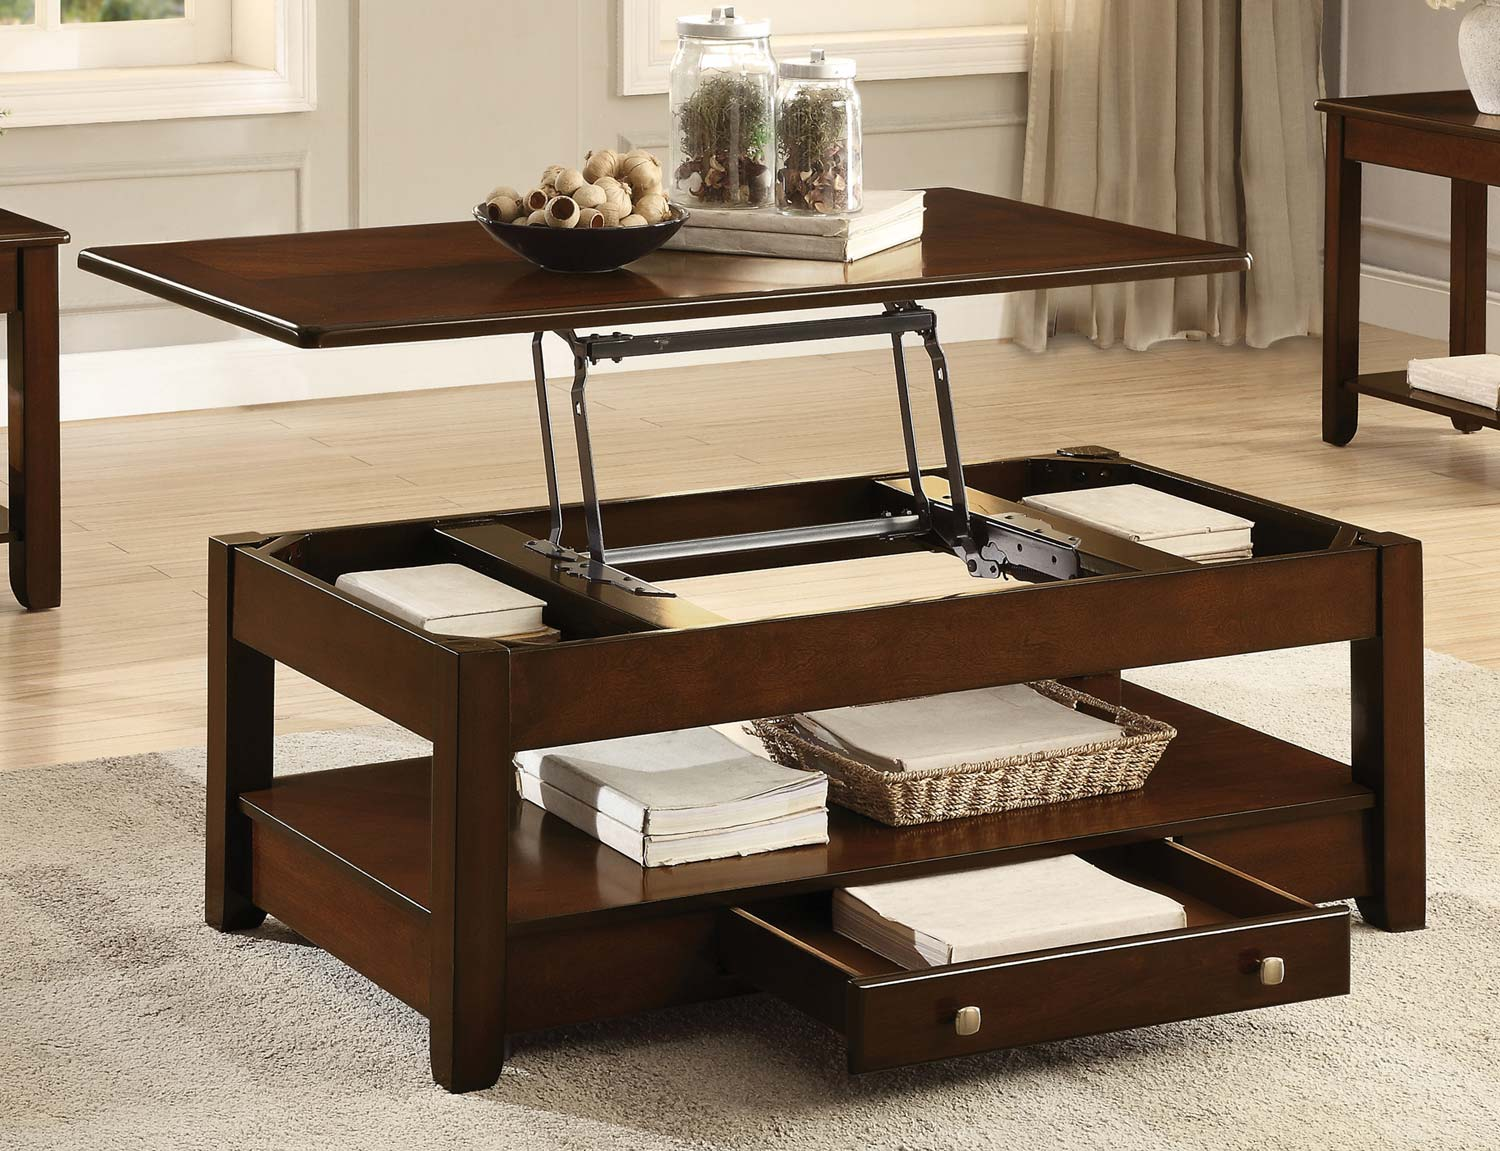 Home Elegance Ballwin Cherry Cocktail Table With Lift Top And